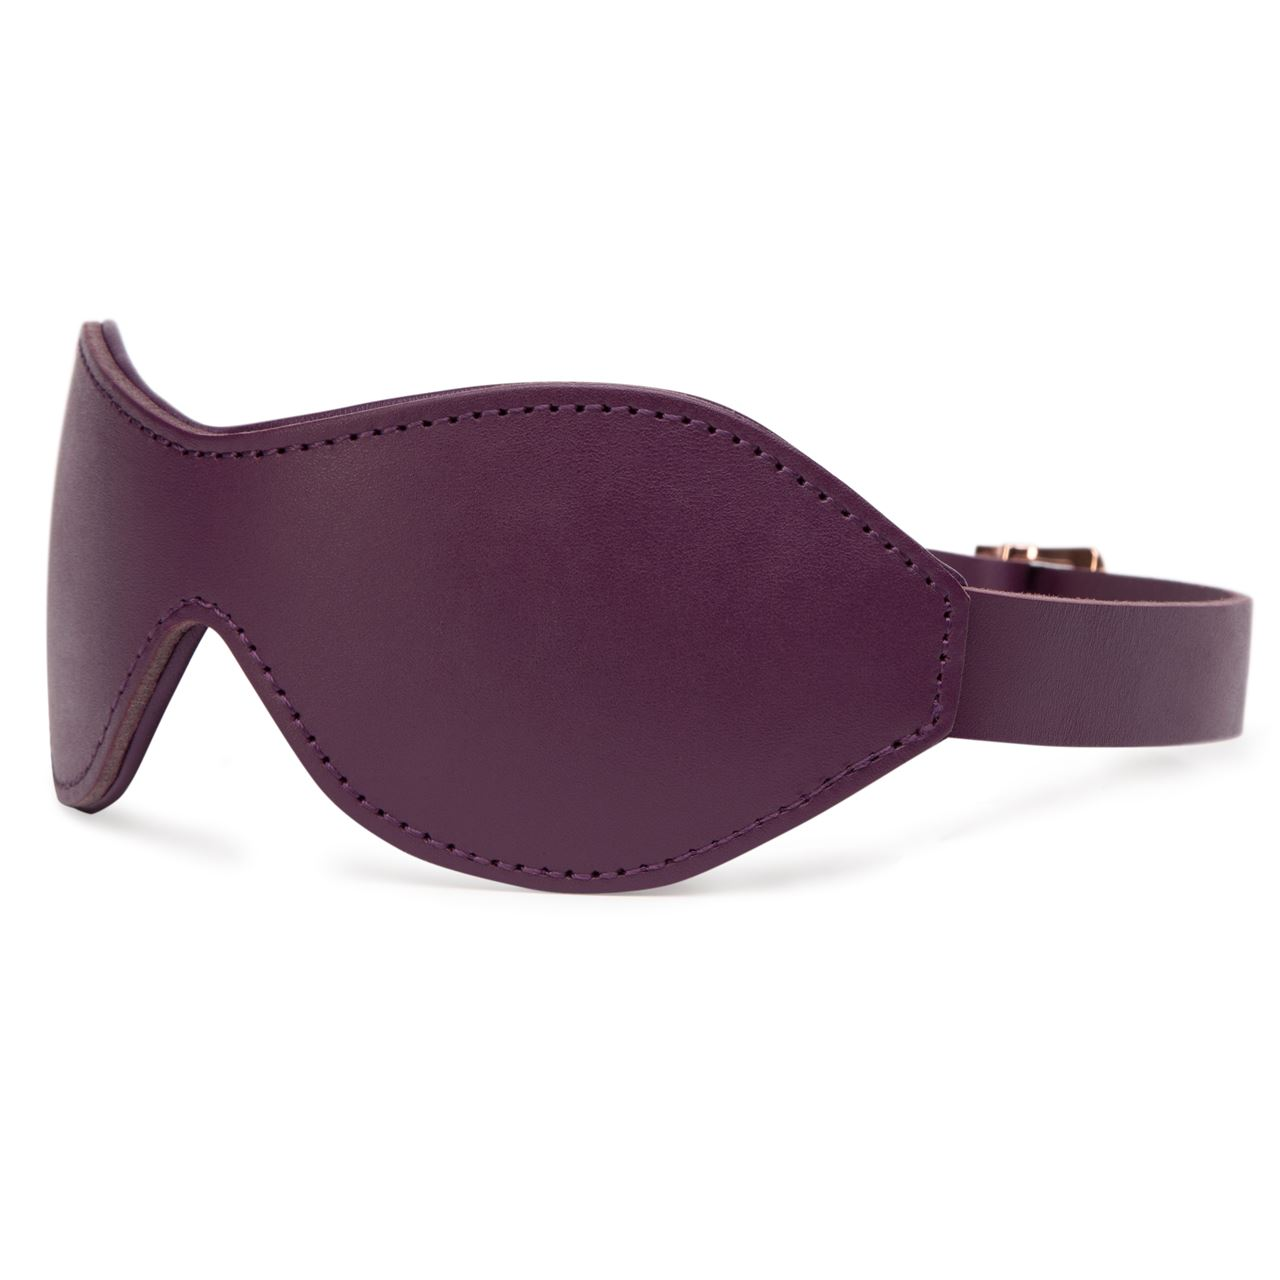 0015256_fifty-shades-freed-cherished-collection-leather-blindfold_c9qlfwwdsmyqtaz5.jpeg